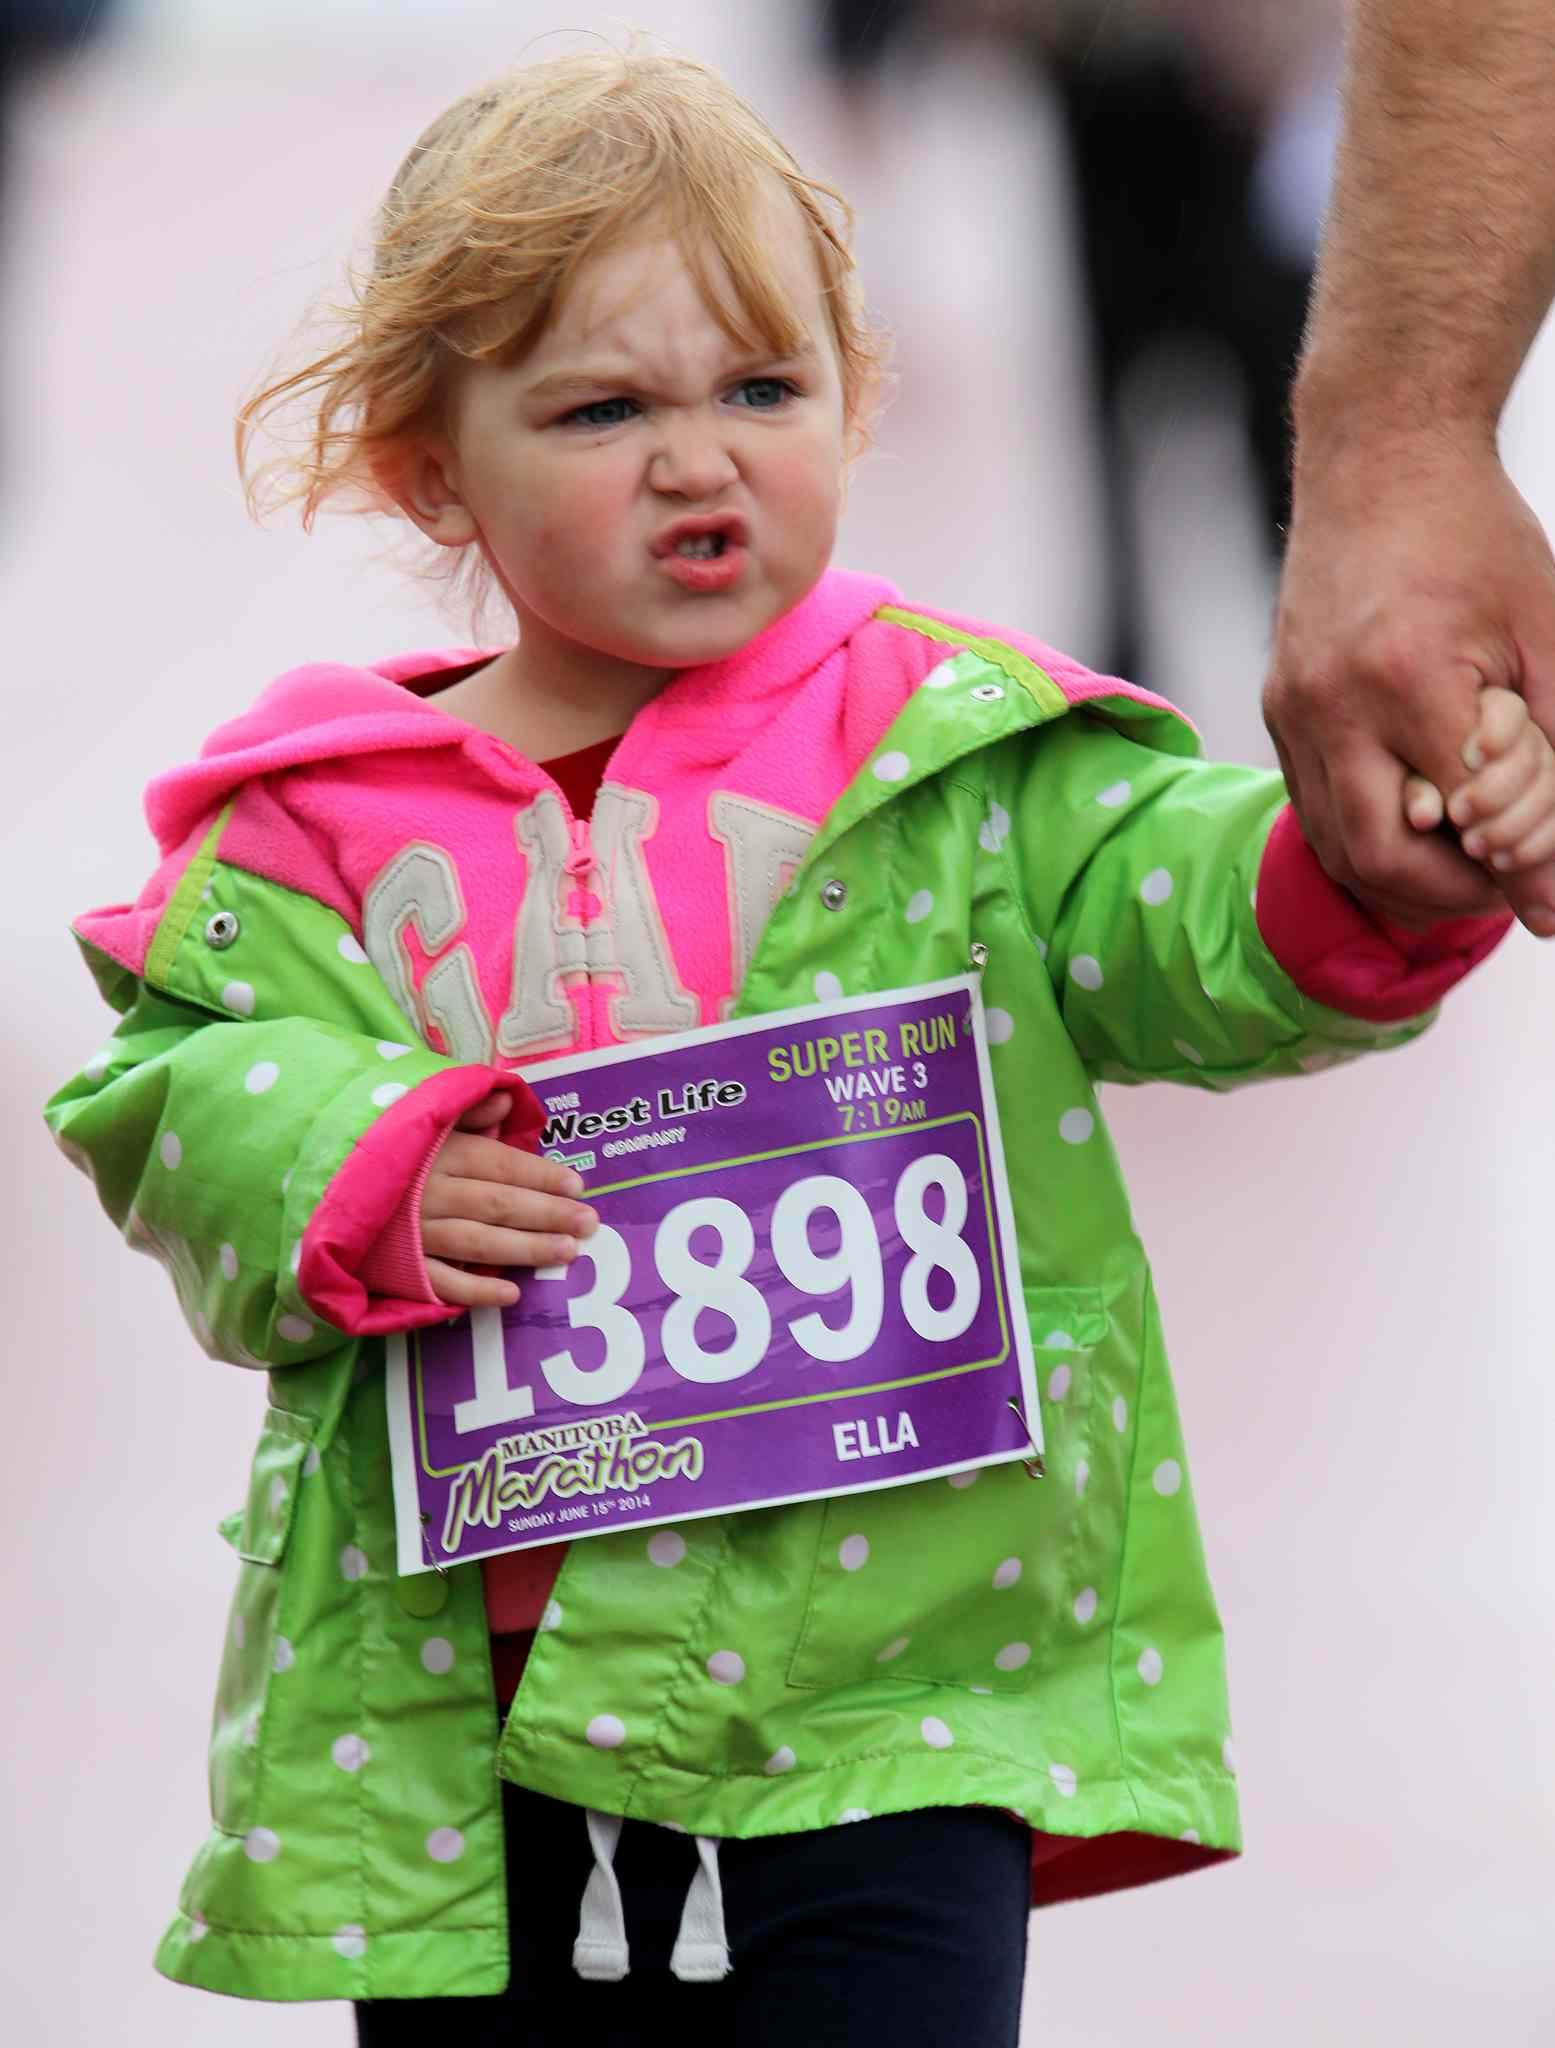 A young Super Run participant doesn't appear to like it.